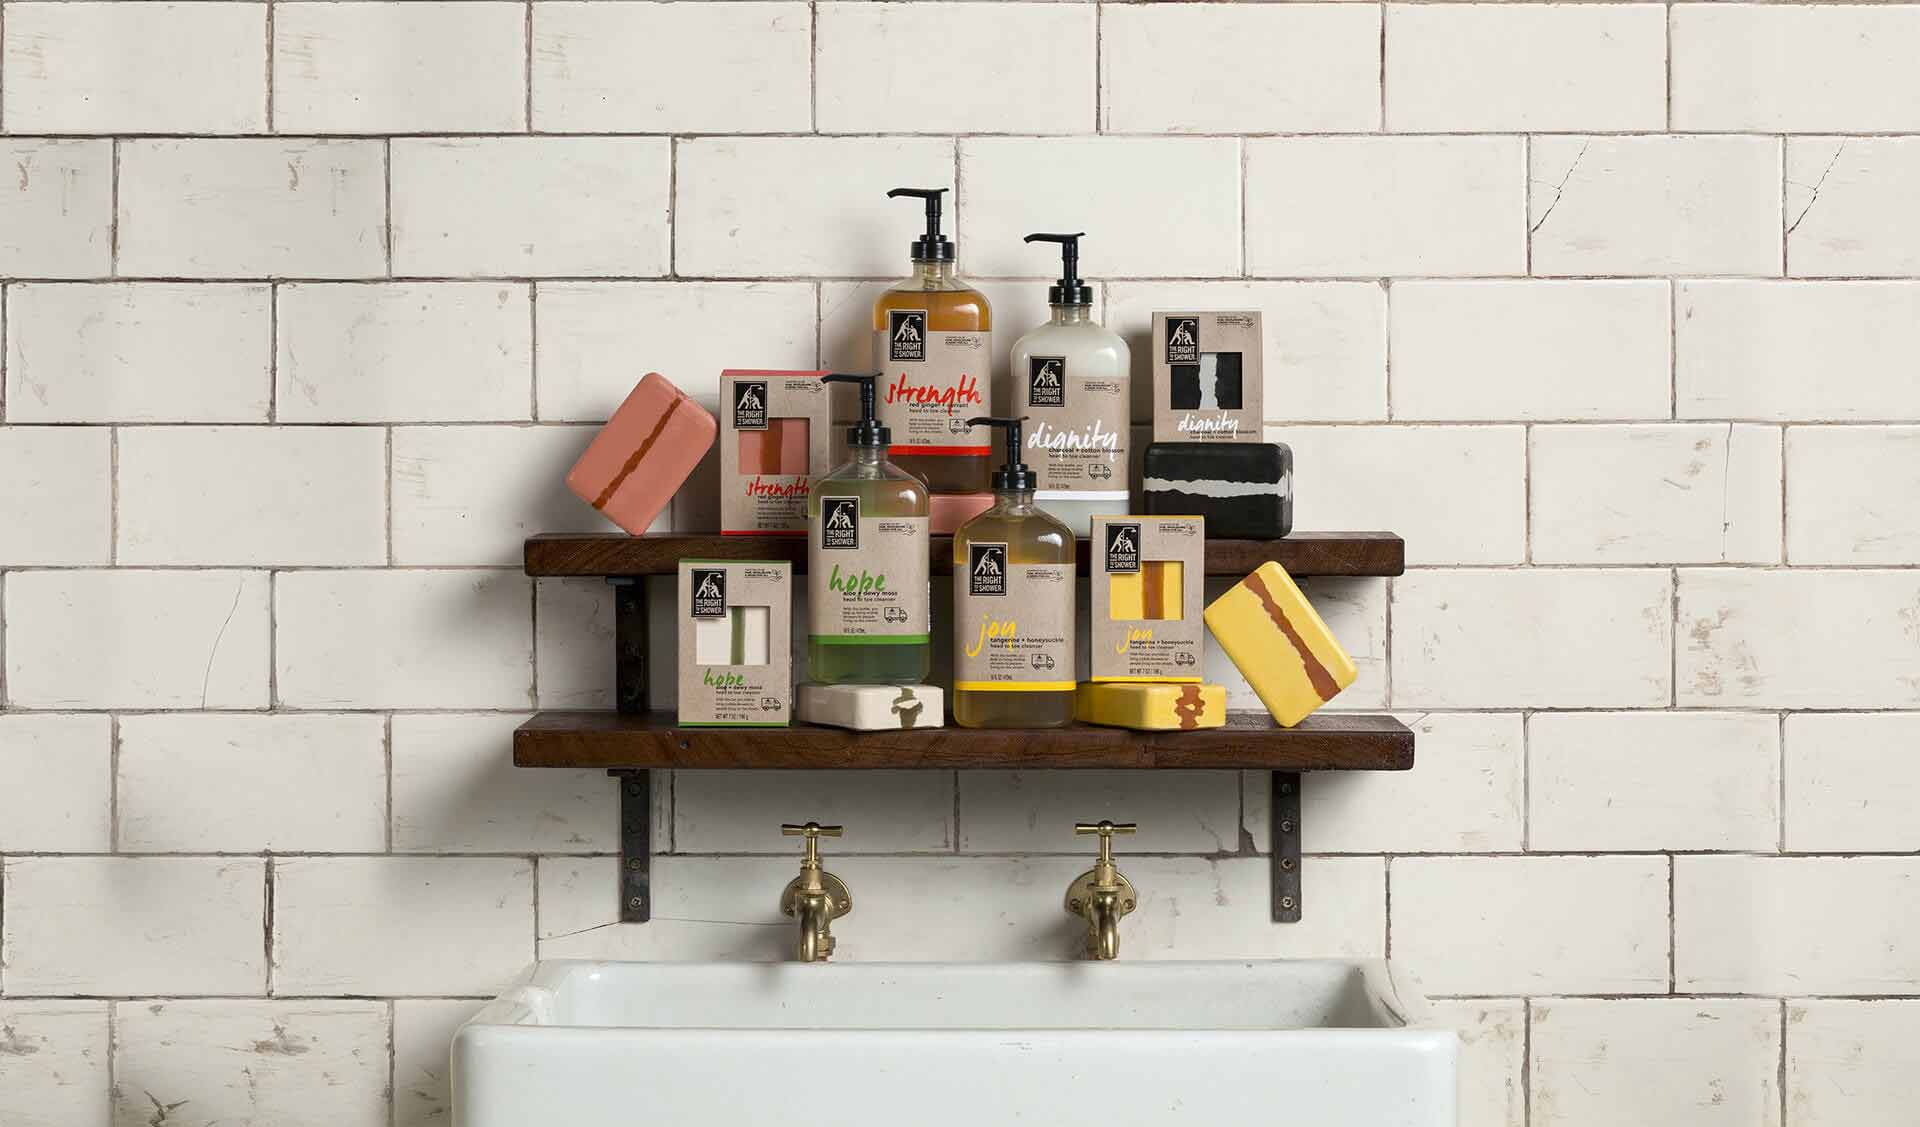 The Right To Shower products on the shelf